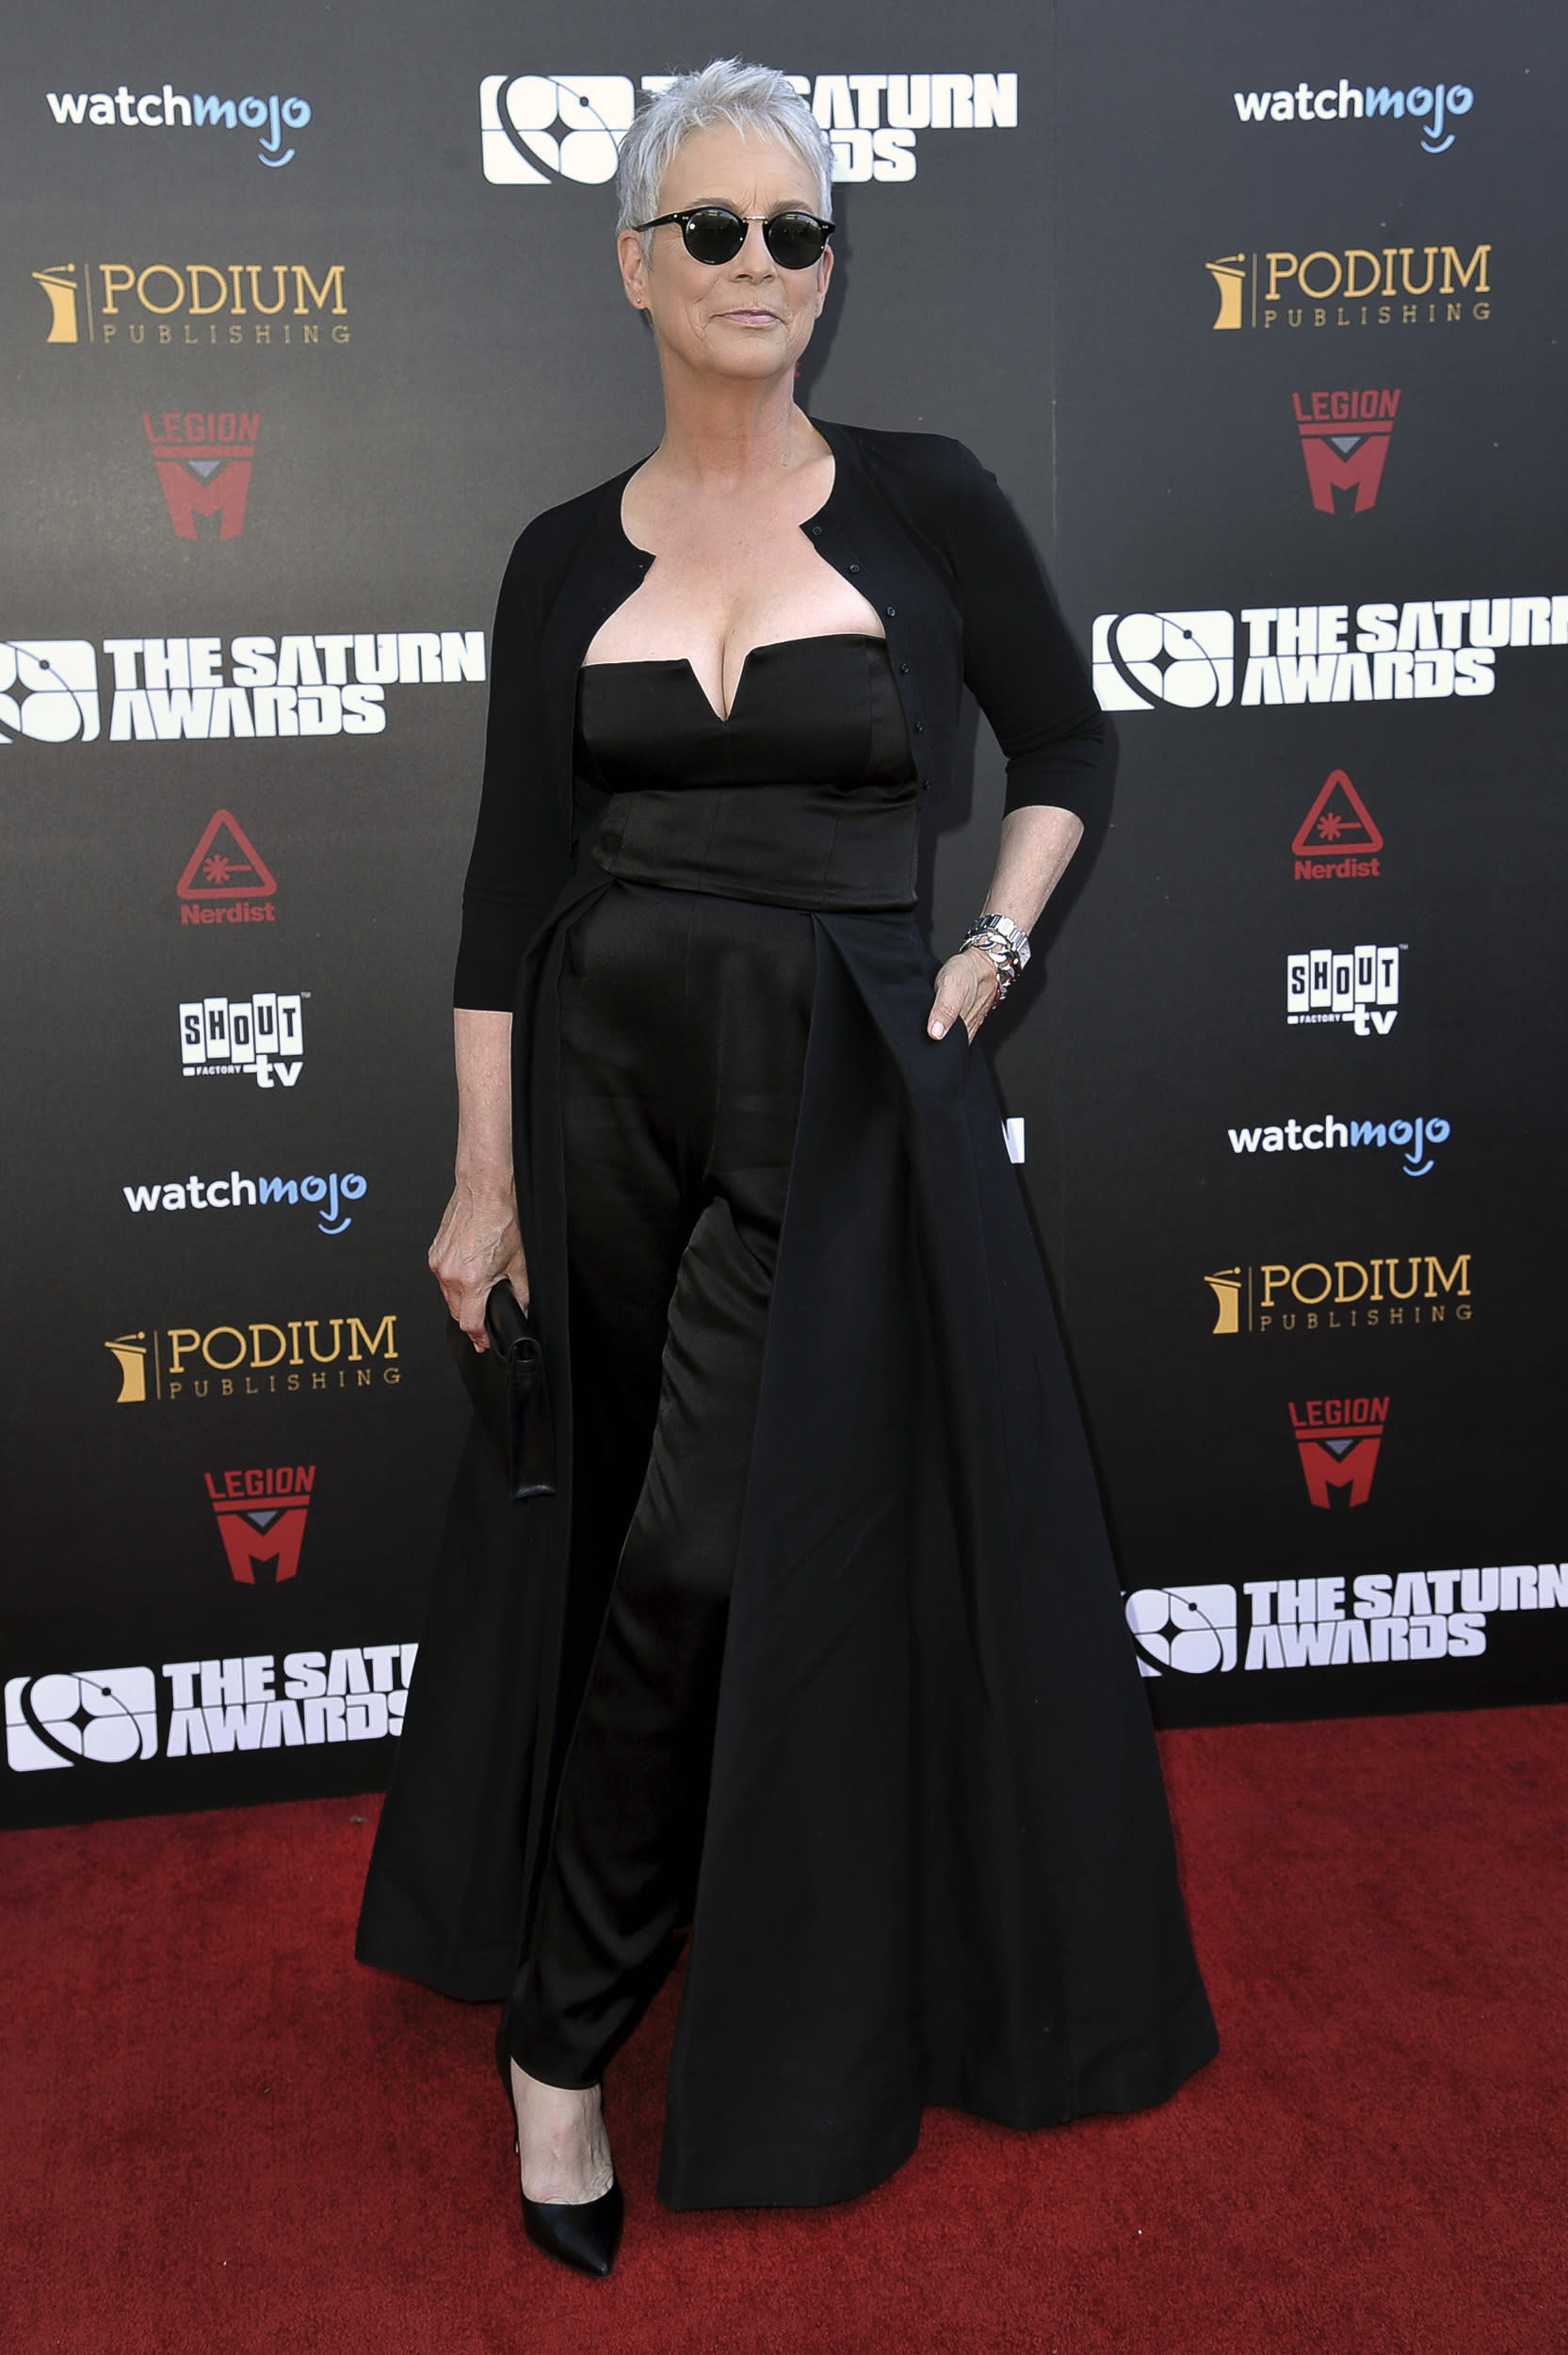 Jamie Lee Curtis attends the 45th Annual Saturn Awards at the Avalon Hollywood on Friday, Sept. 13, 2019, in Los Angeles. (Photo by Richard Shotwell/Invision/AP